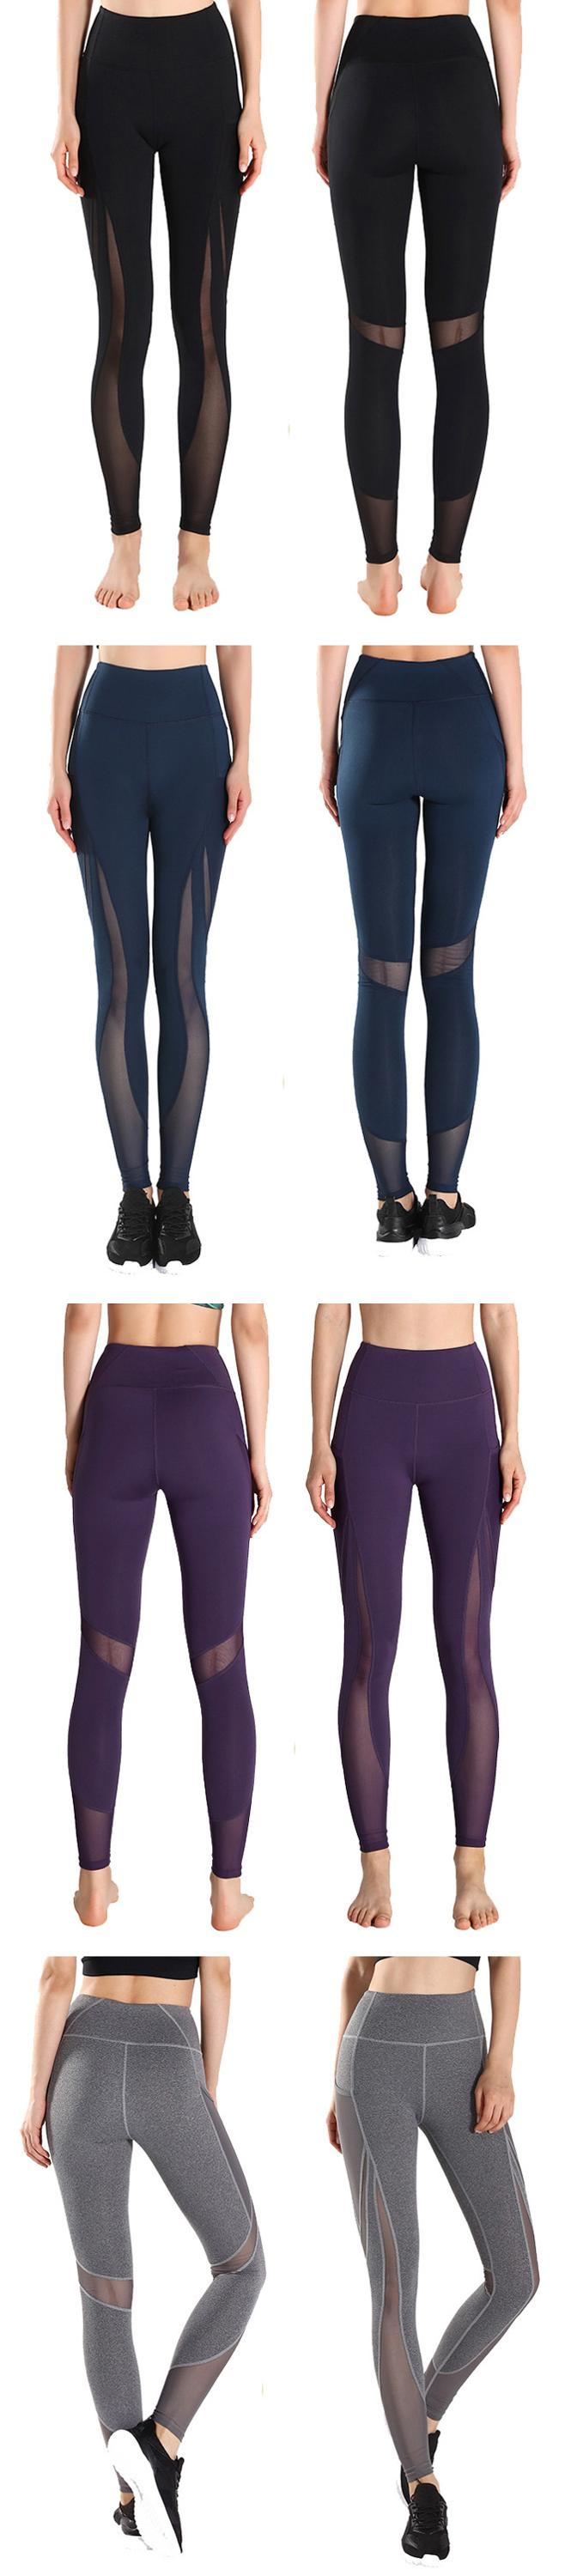 Oem Logo Custom Reflective Printing Womens Gym Fitness Breathable Legging Import Hitam